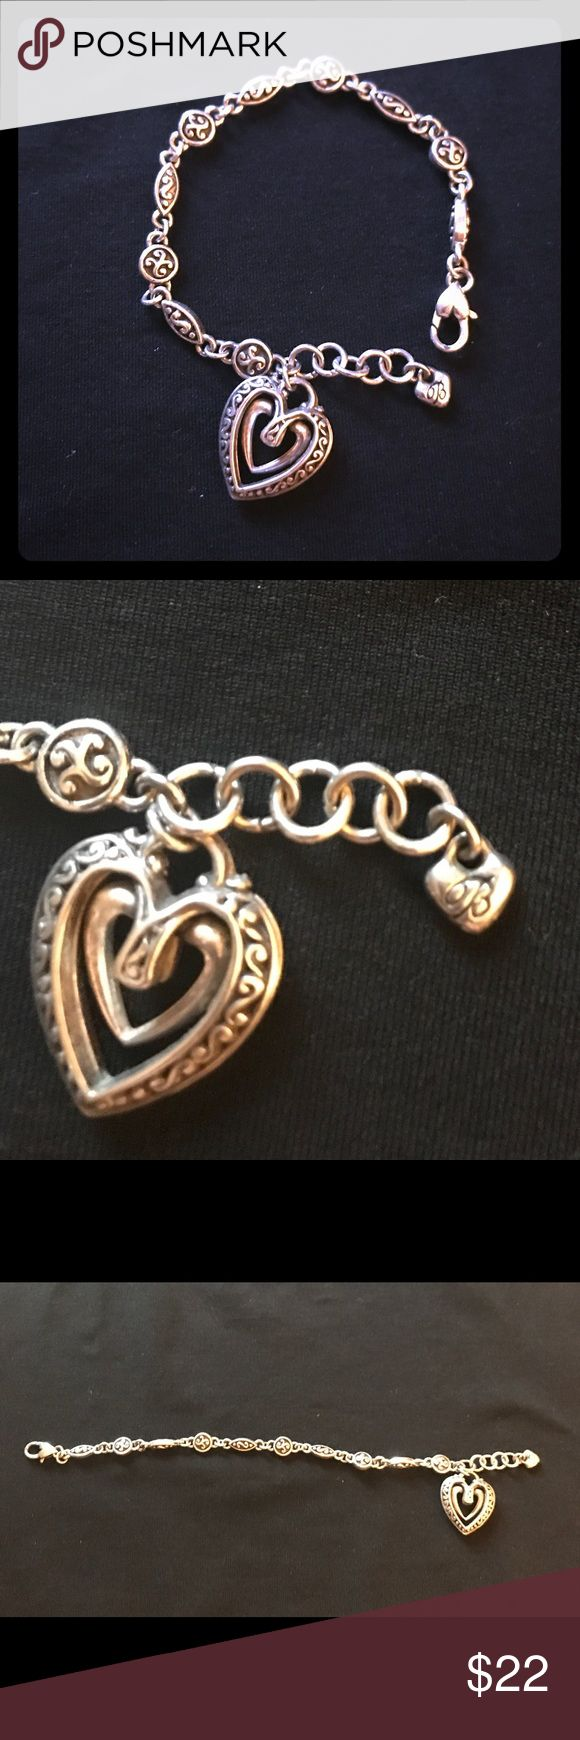 "Silver Brighton Bracelet with Heart Dangle Sweet 8"" silver Brighton Bracelet with heart charm/dangle. Like new condition! Brighton Jewelry Bracelets"